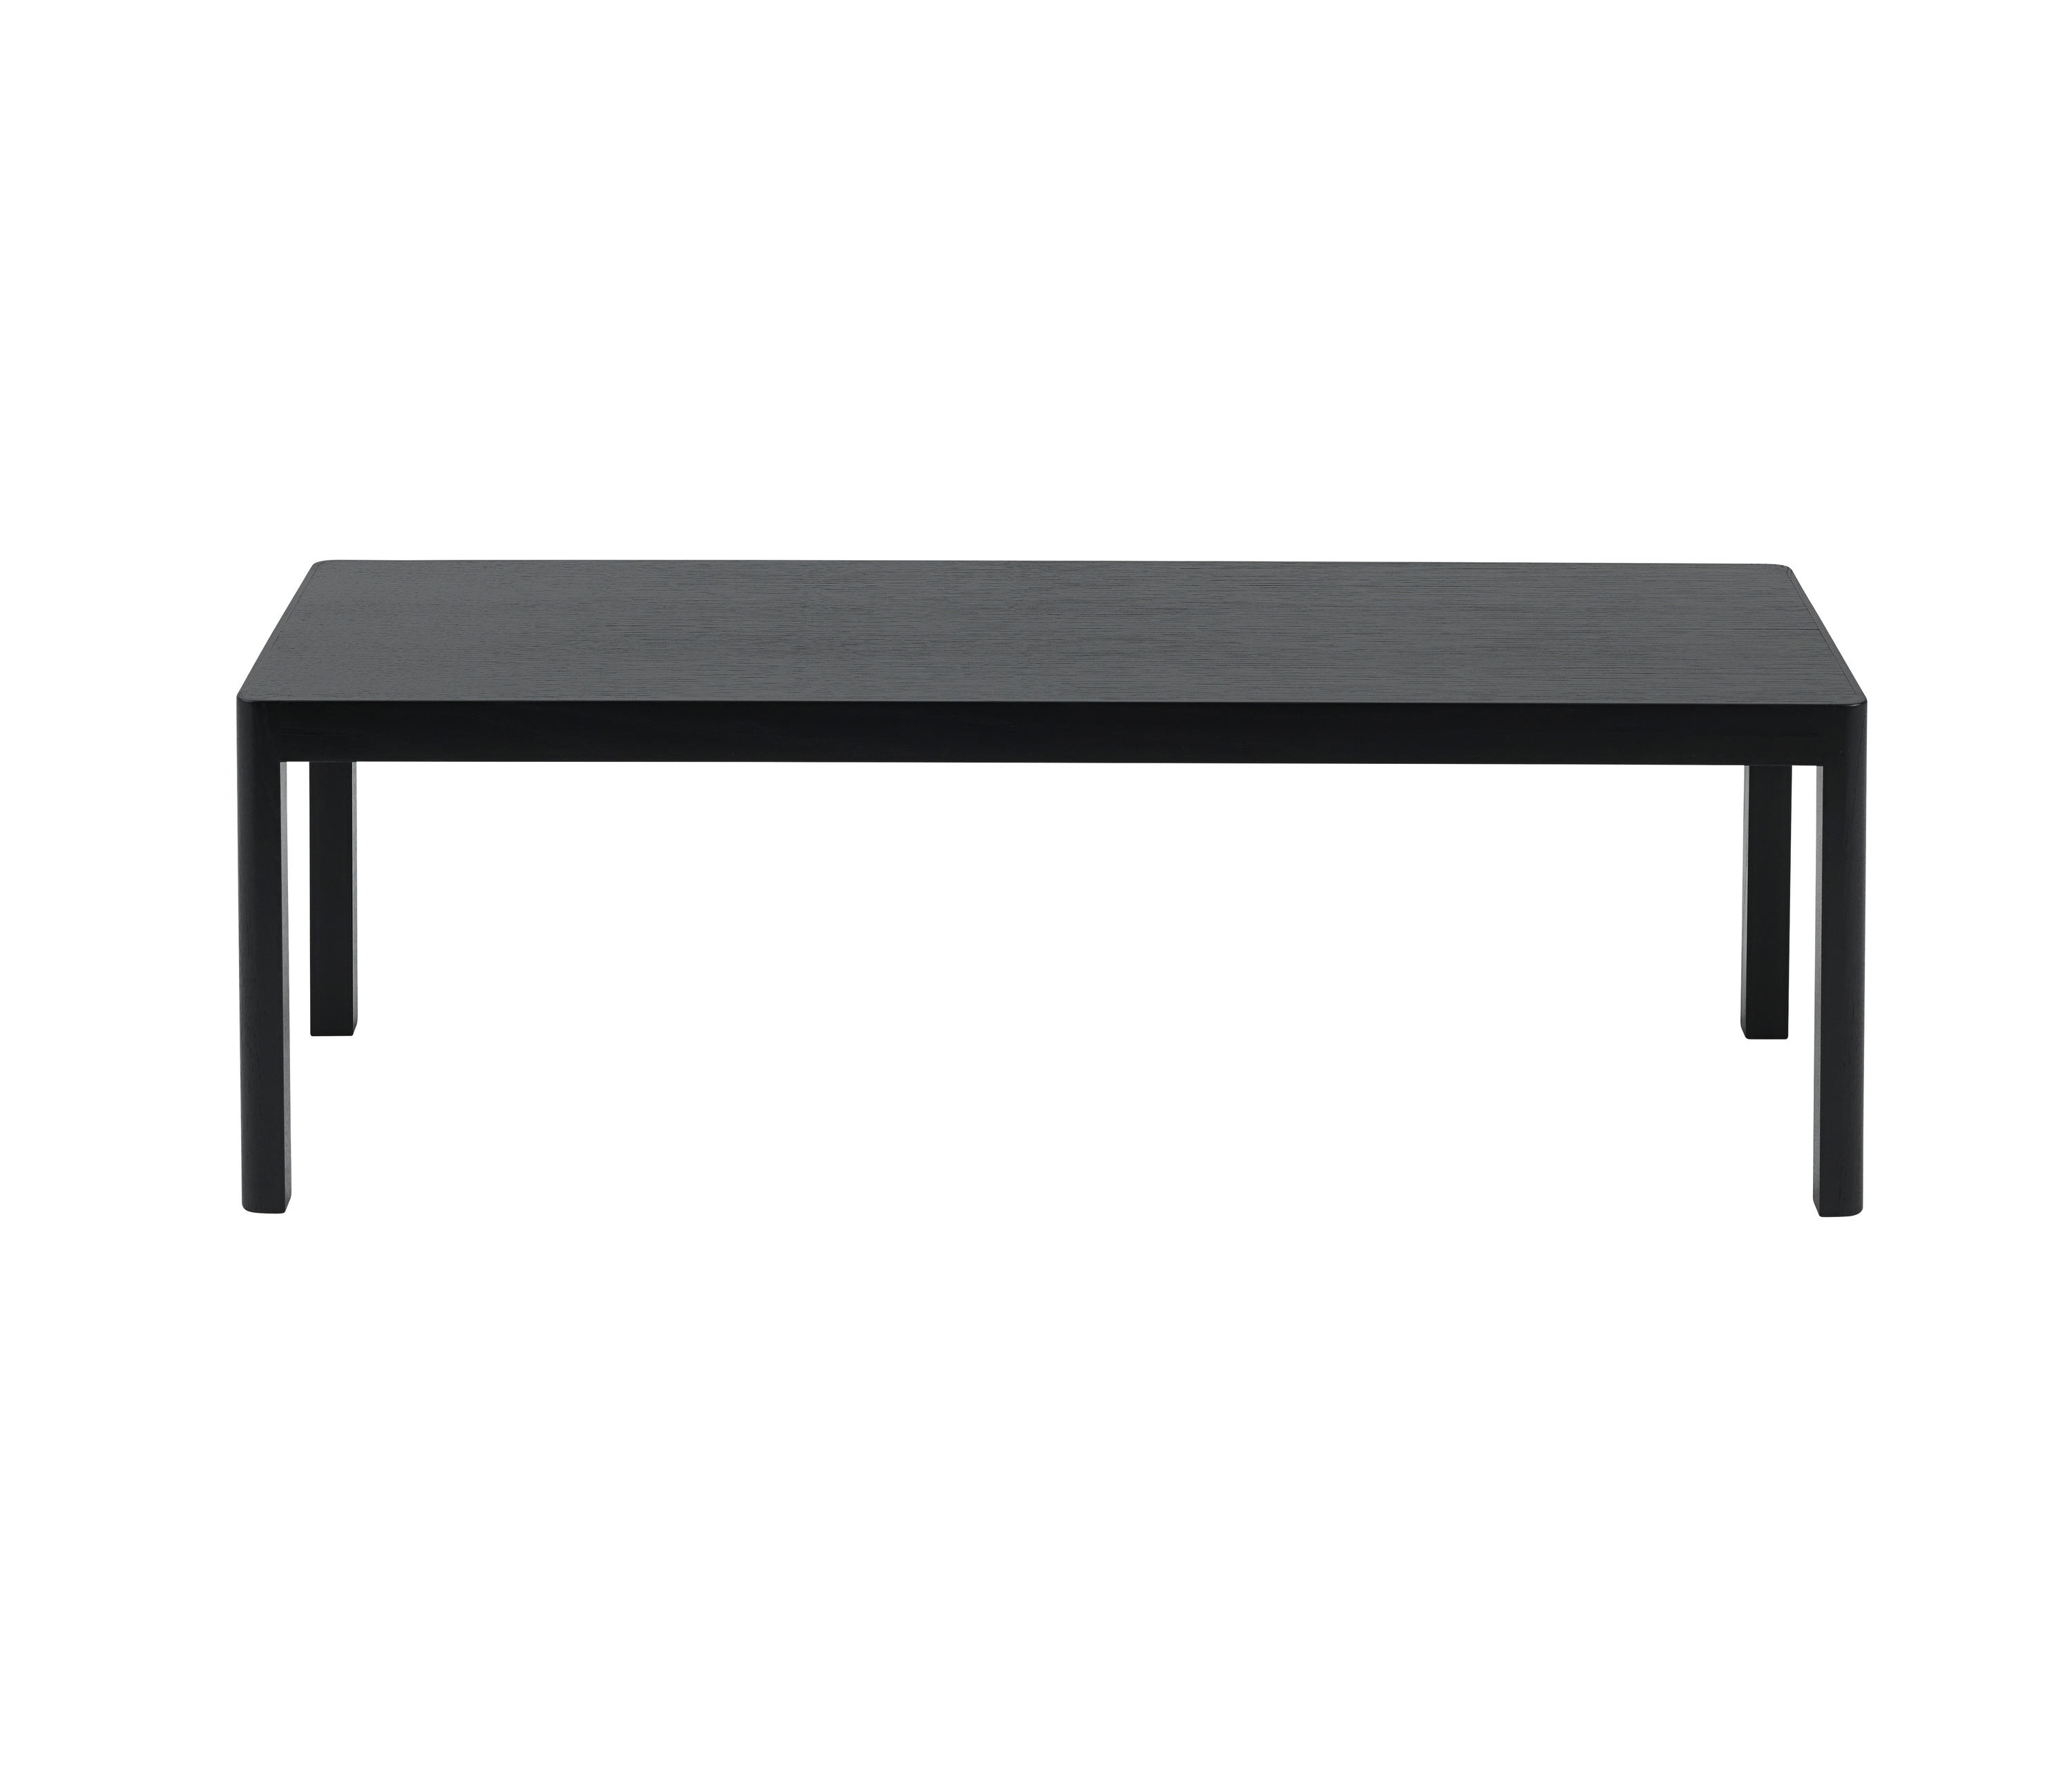 Workshop Coffee Table By Muuto | Coffee Tables